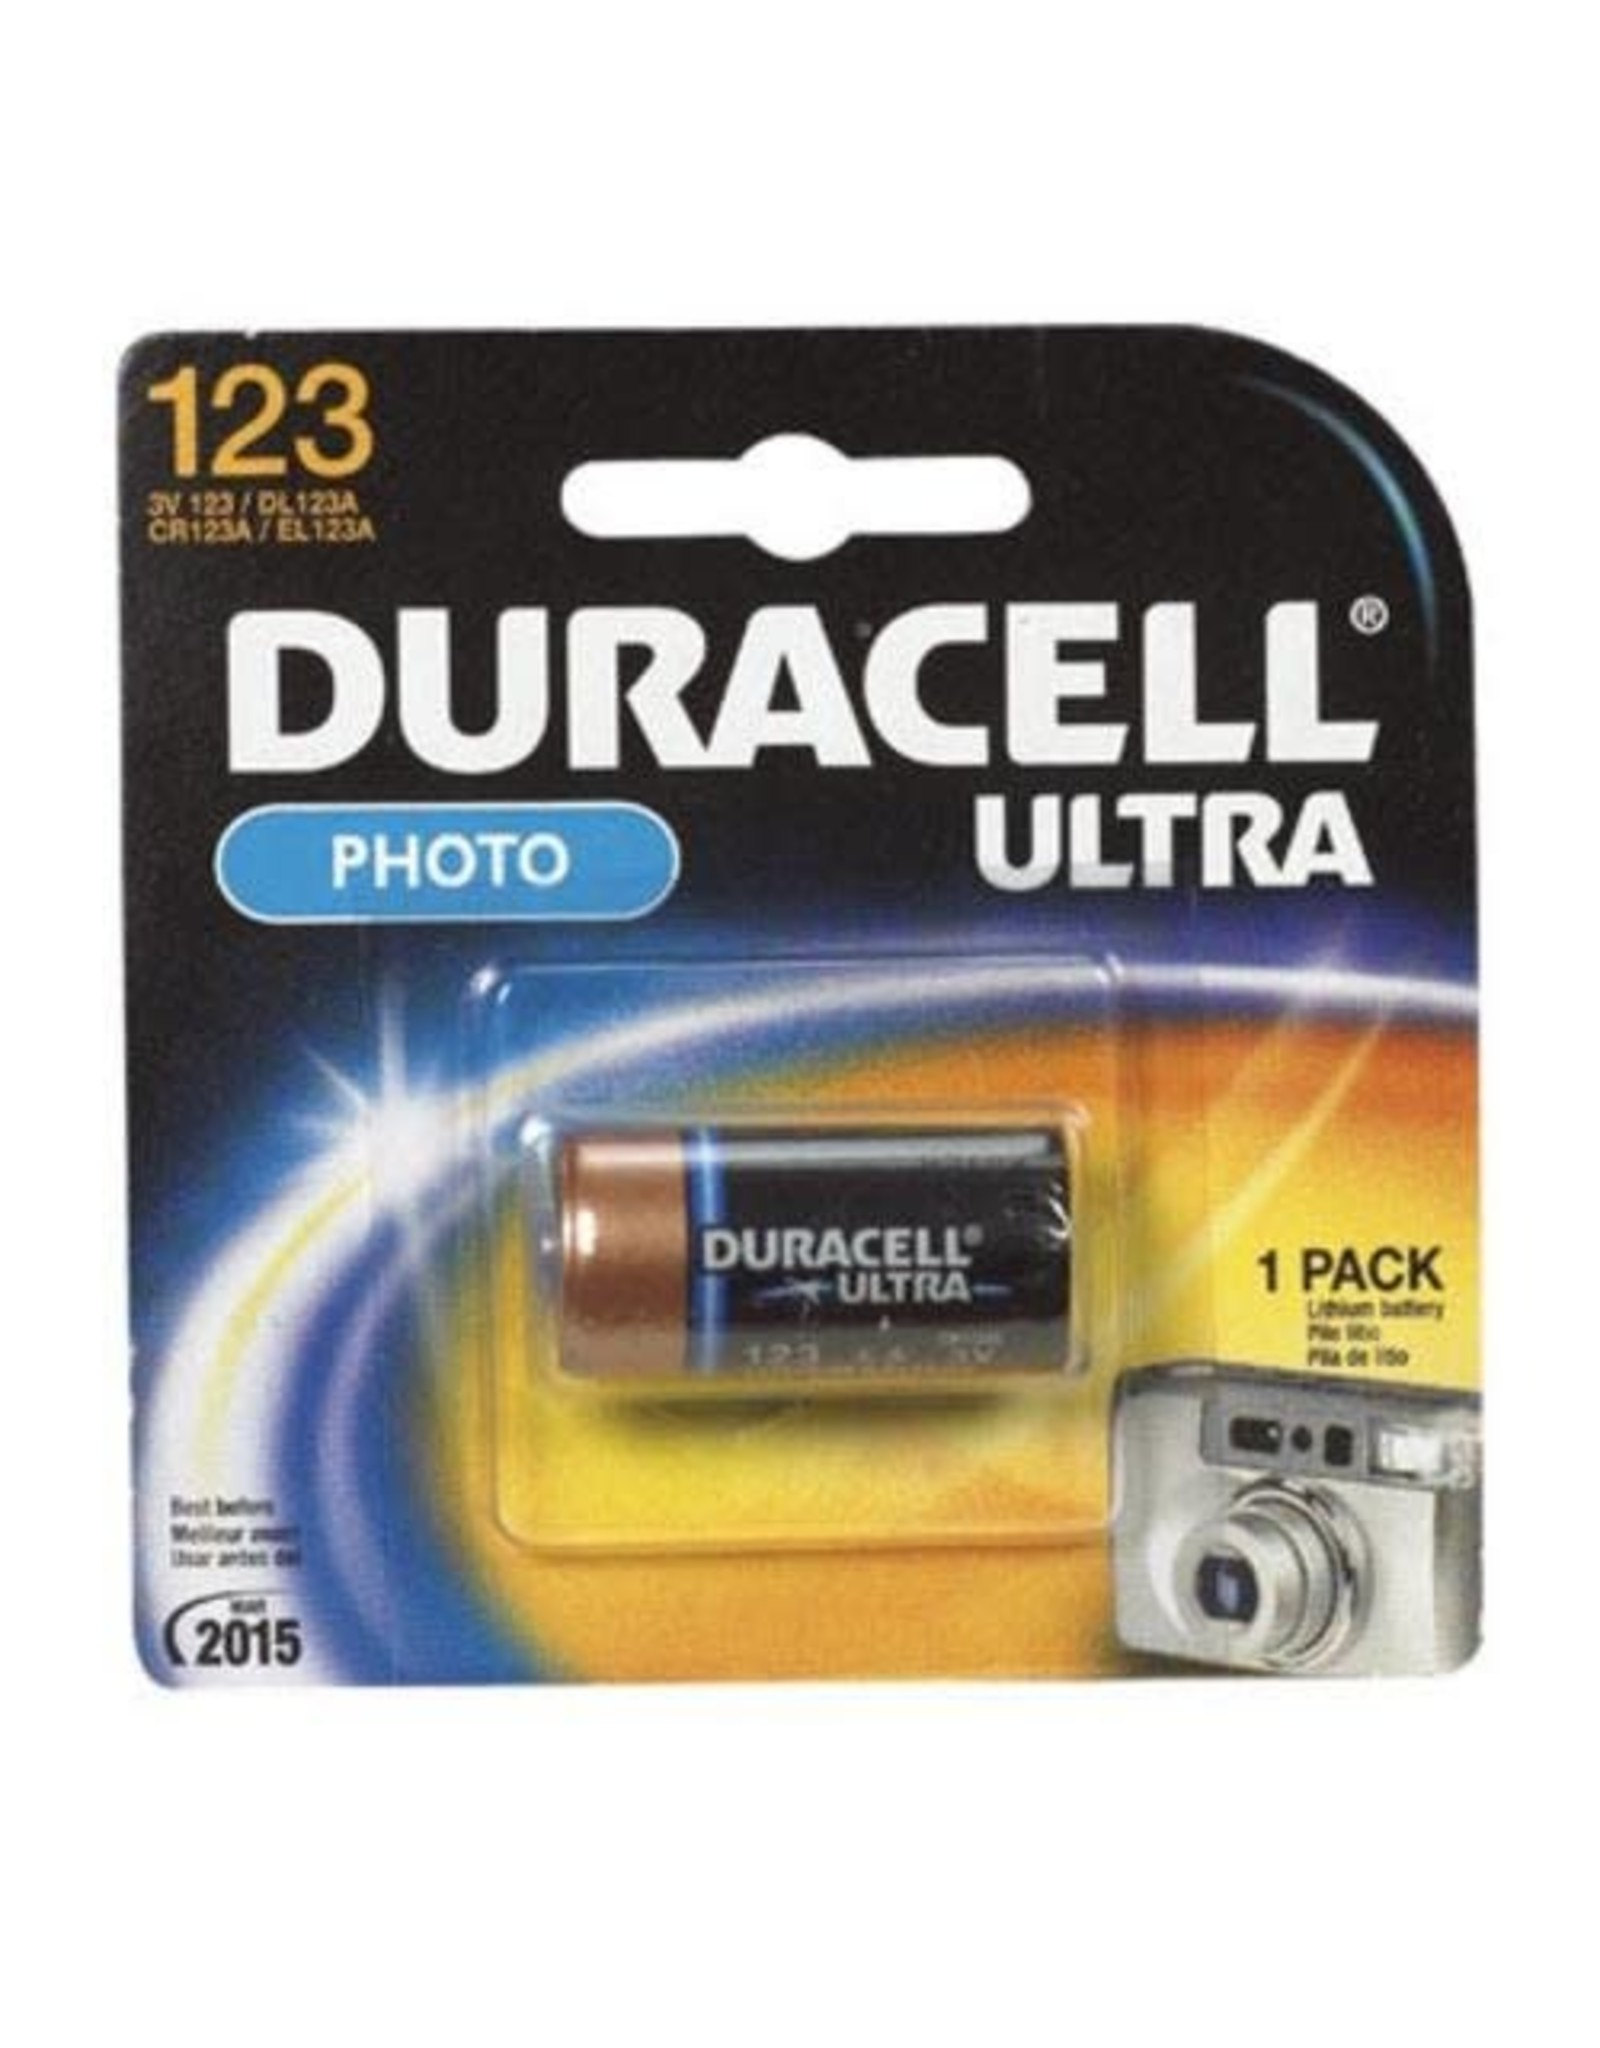 Duracell Canada Inc. Duracell DL123 3V Lithium Photo Battery 1 Pack